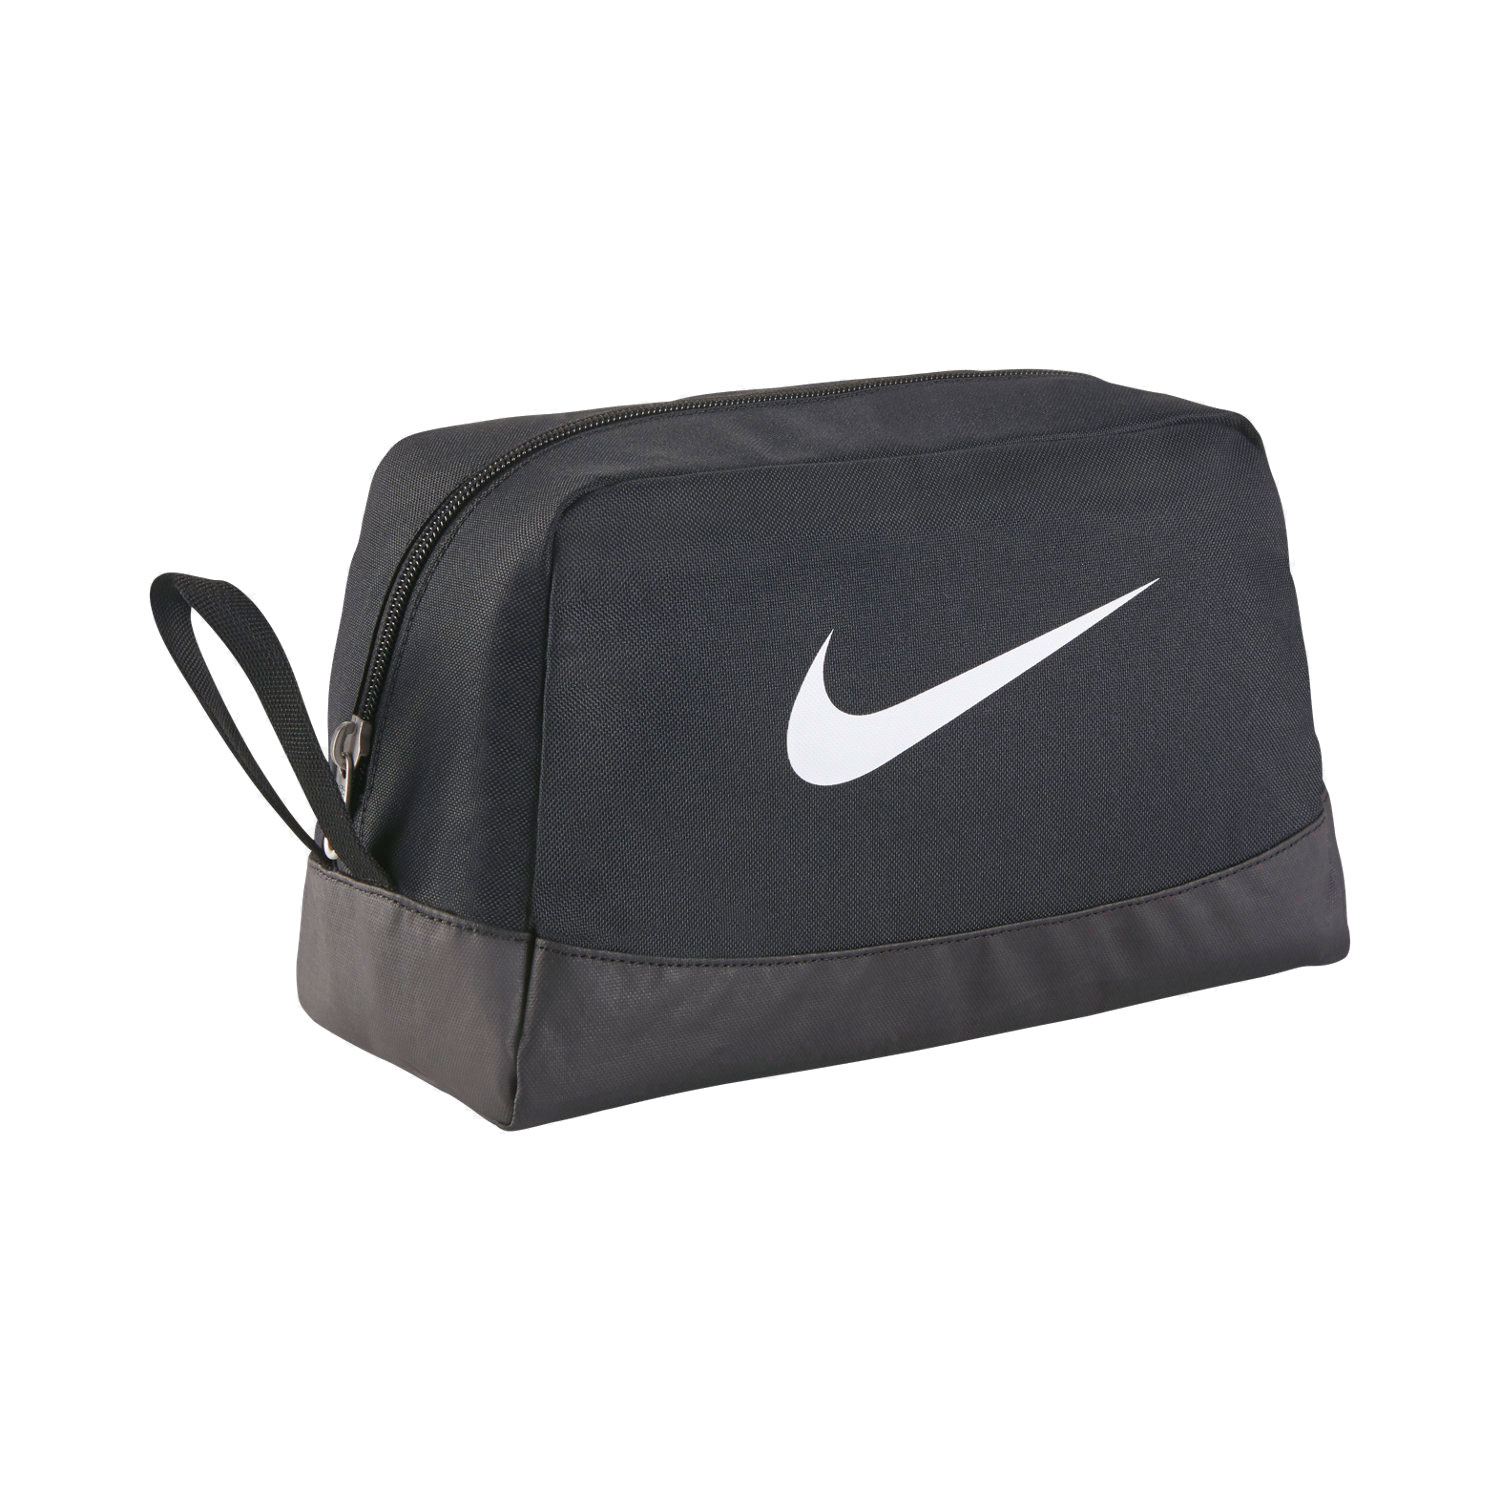 Сумочка Nike CLUB TEAM TOILETRY BAG BA5198-010